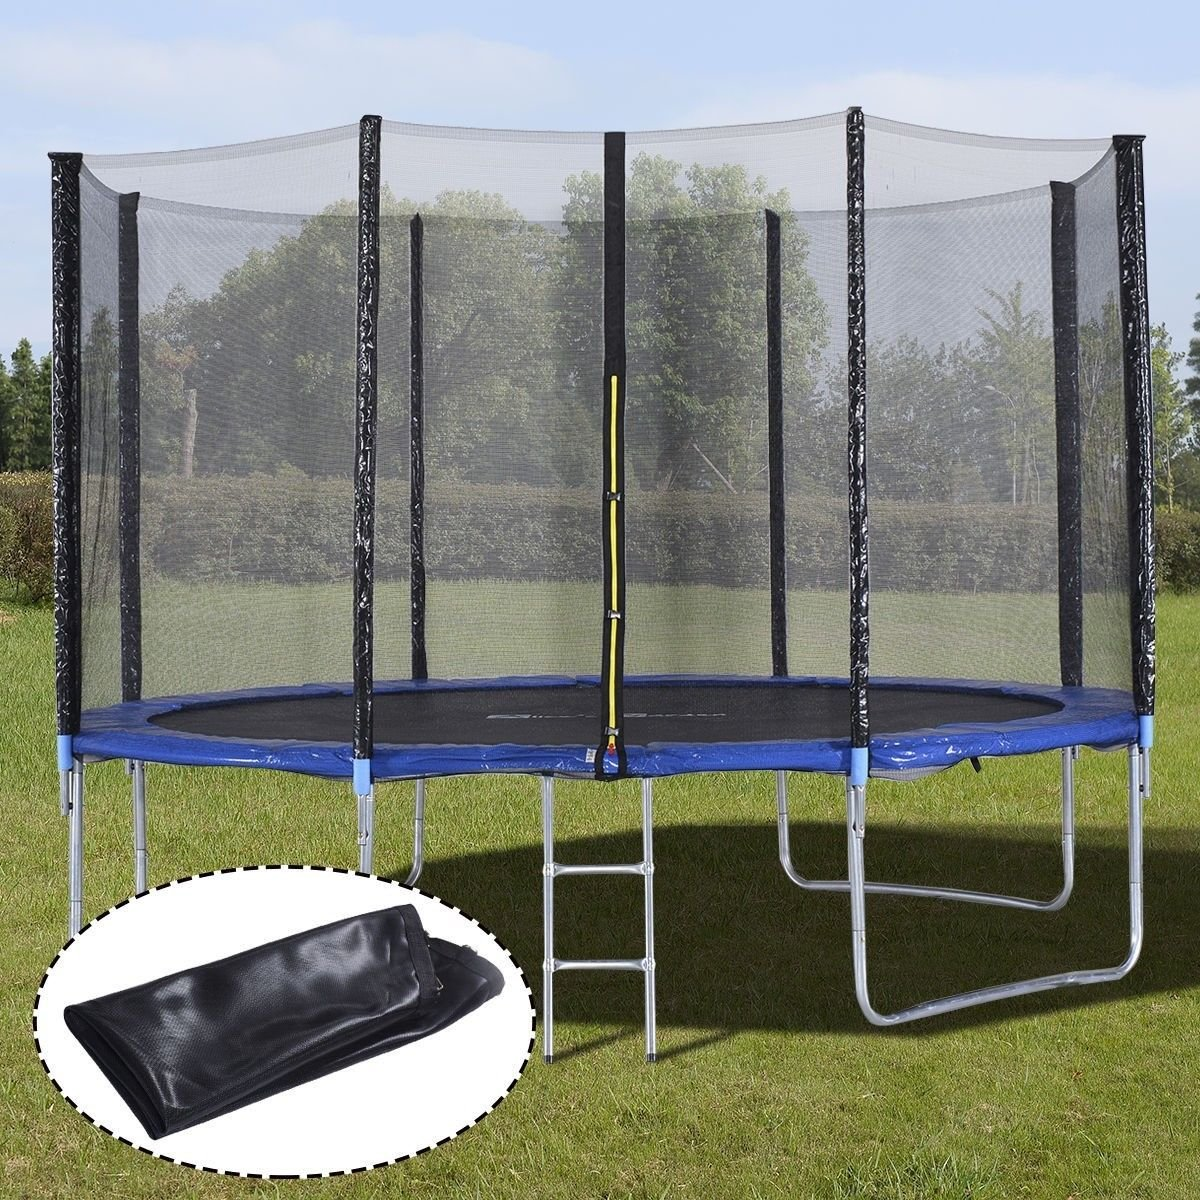 12FT Trampoline Combo Bounce Jump Enclosure Safety Net W/Spring Pad Ladder ,#G14E6GE4R-GE 4-TEW6W288932 by Tinflyphy (Image #1)